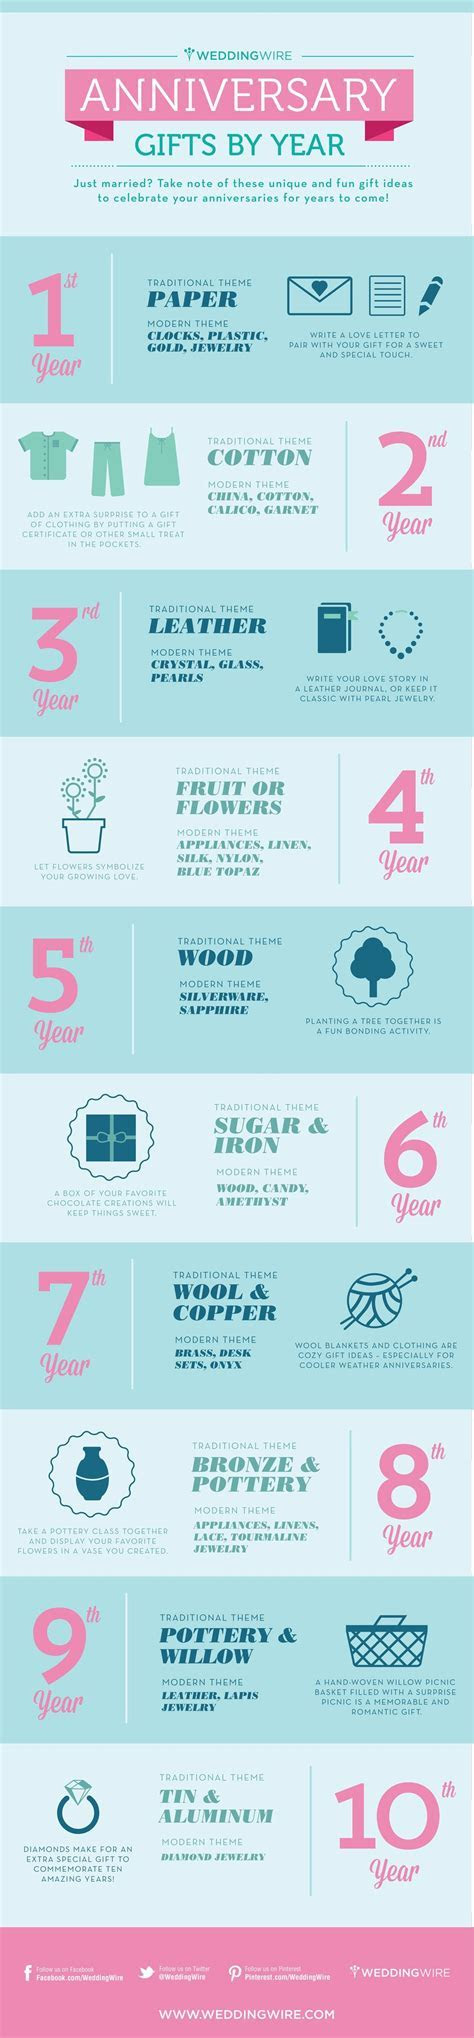 Infographic: Anniversary Gifts by Year   Weddings